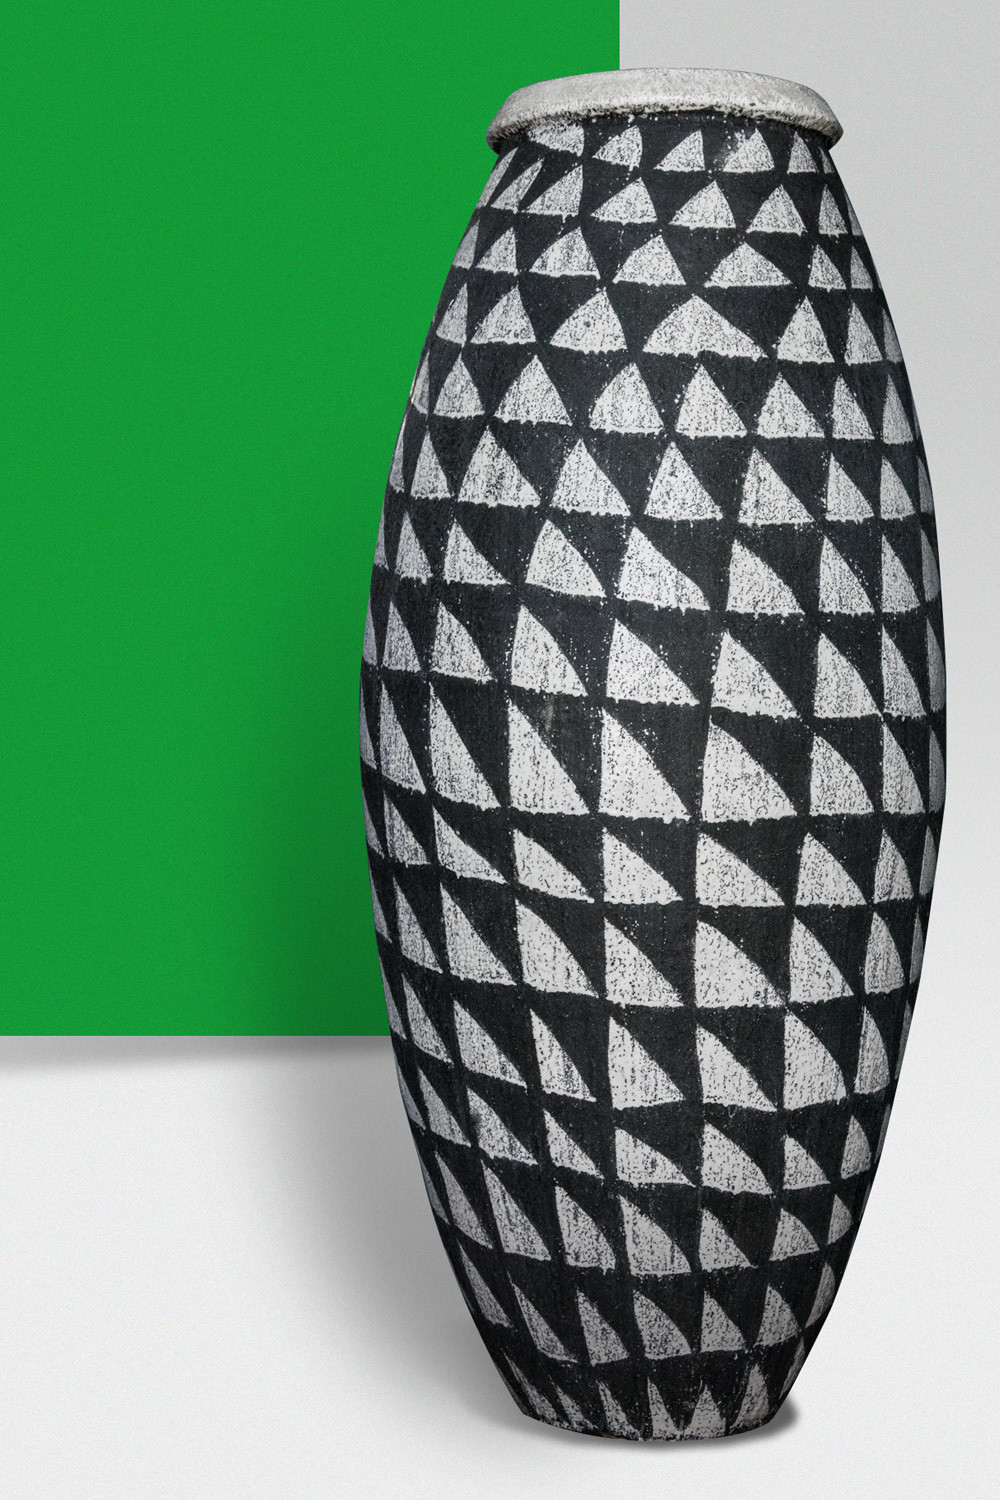 big black floor vases of muse modern burkina floor vase within burkina floor vase a handmade and gloriously imperfect graphic pattern draws the eye in and the heart out 55h x 24 5od